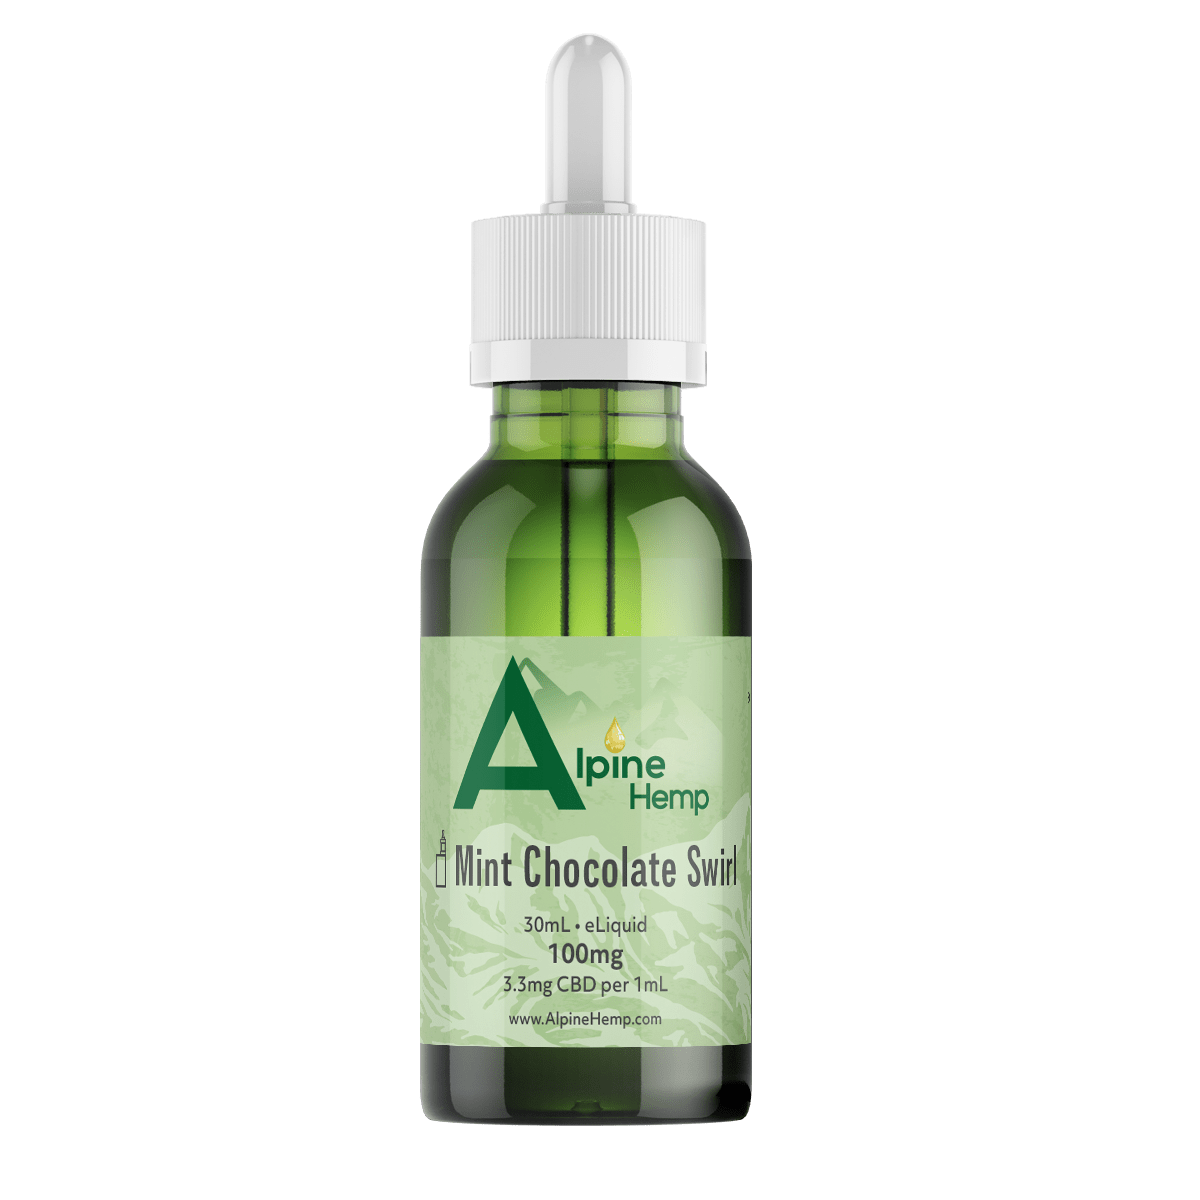 alpine hemp eliquid, vape refill, vape, hemp extract, vape juice, mint chocolate